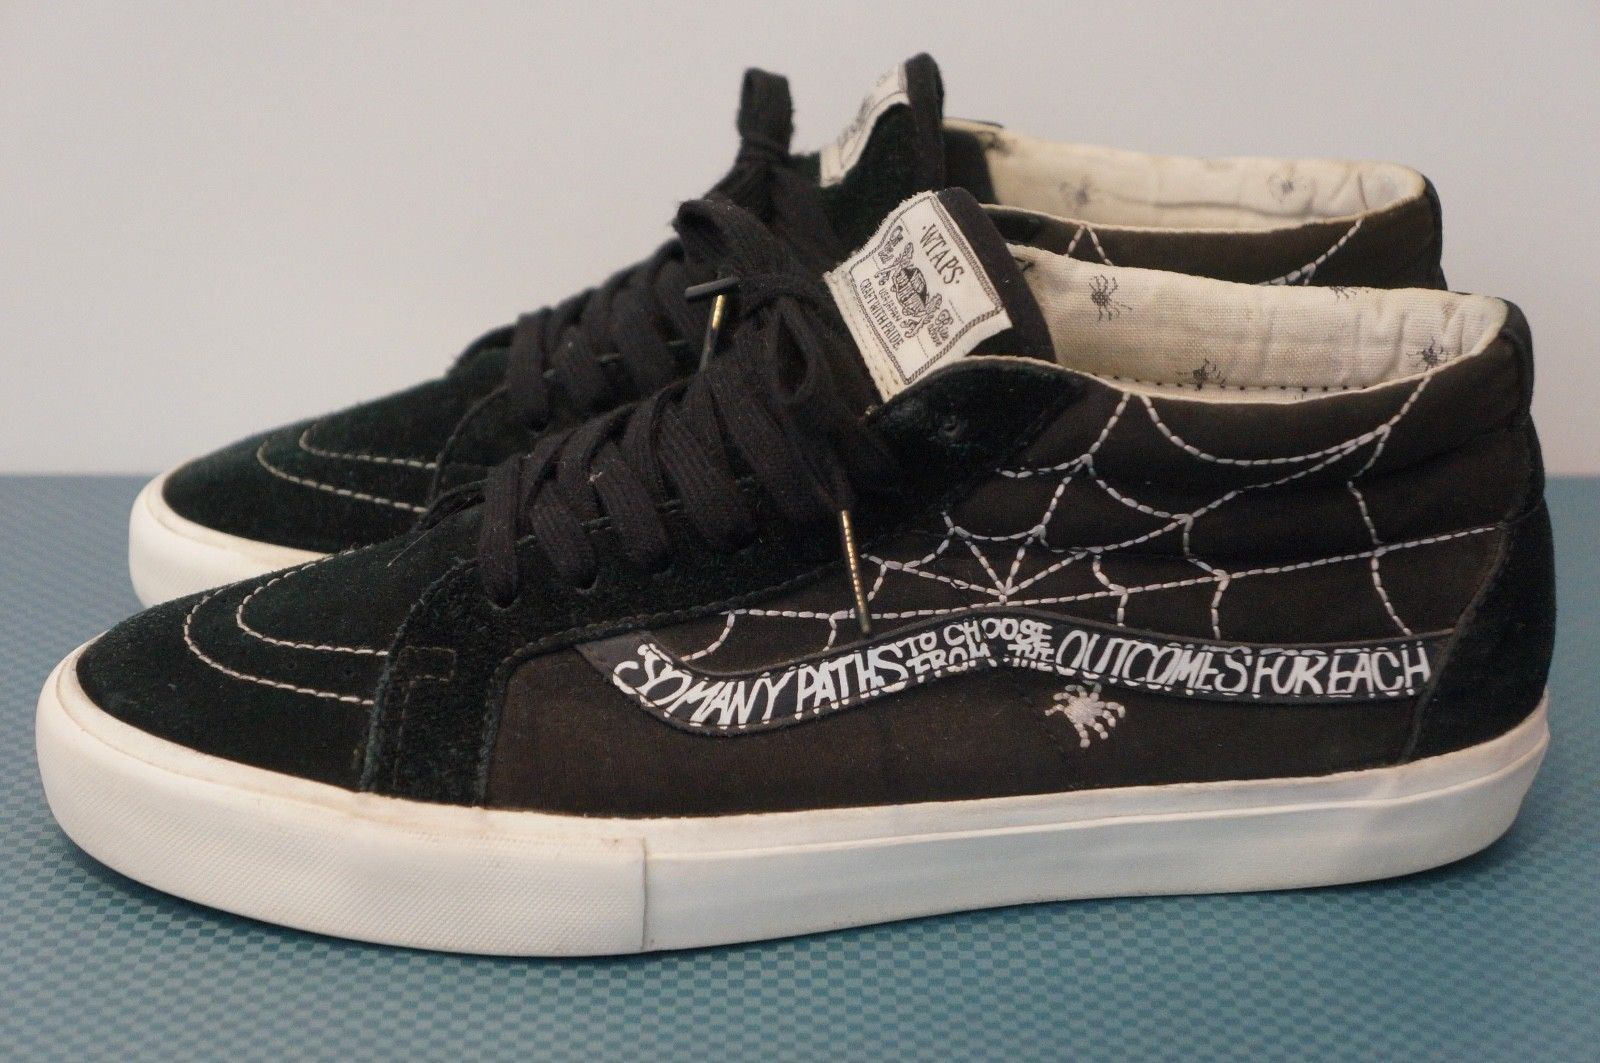 0806e70808 2010 Vans Sk8-Mid x Wtaps Spider Syndicate 9.5 US Vault Sk8-Hi Era Authentic